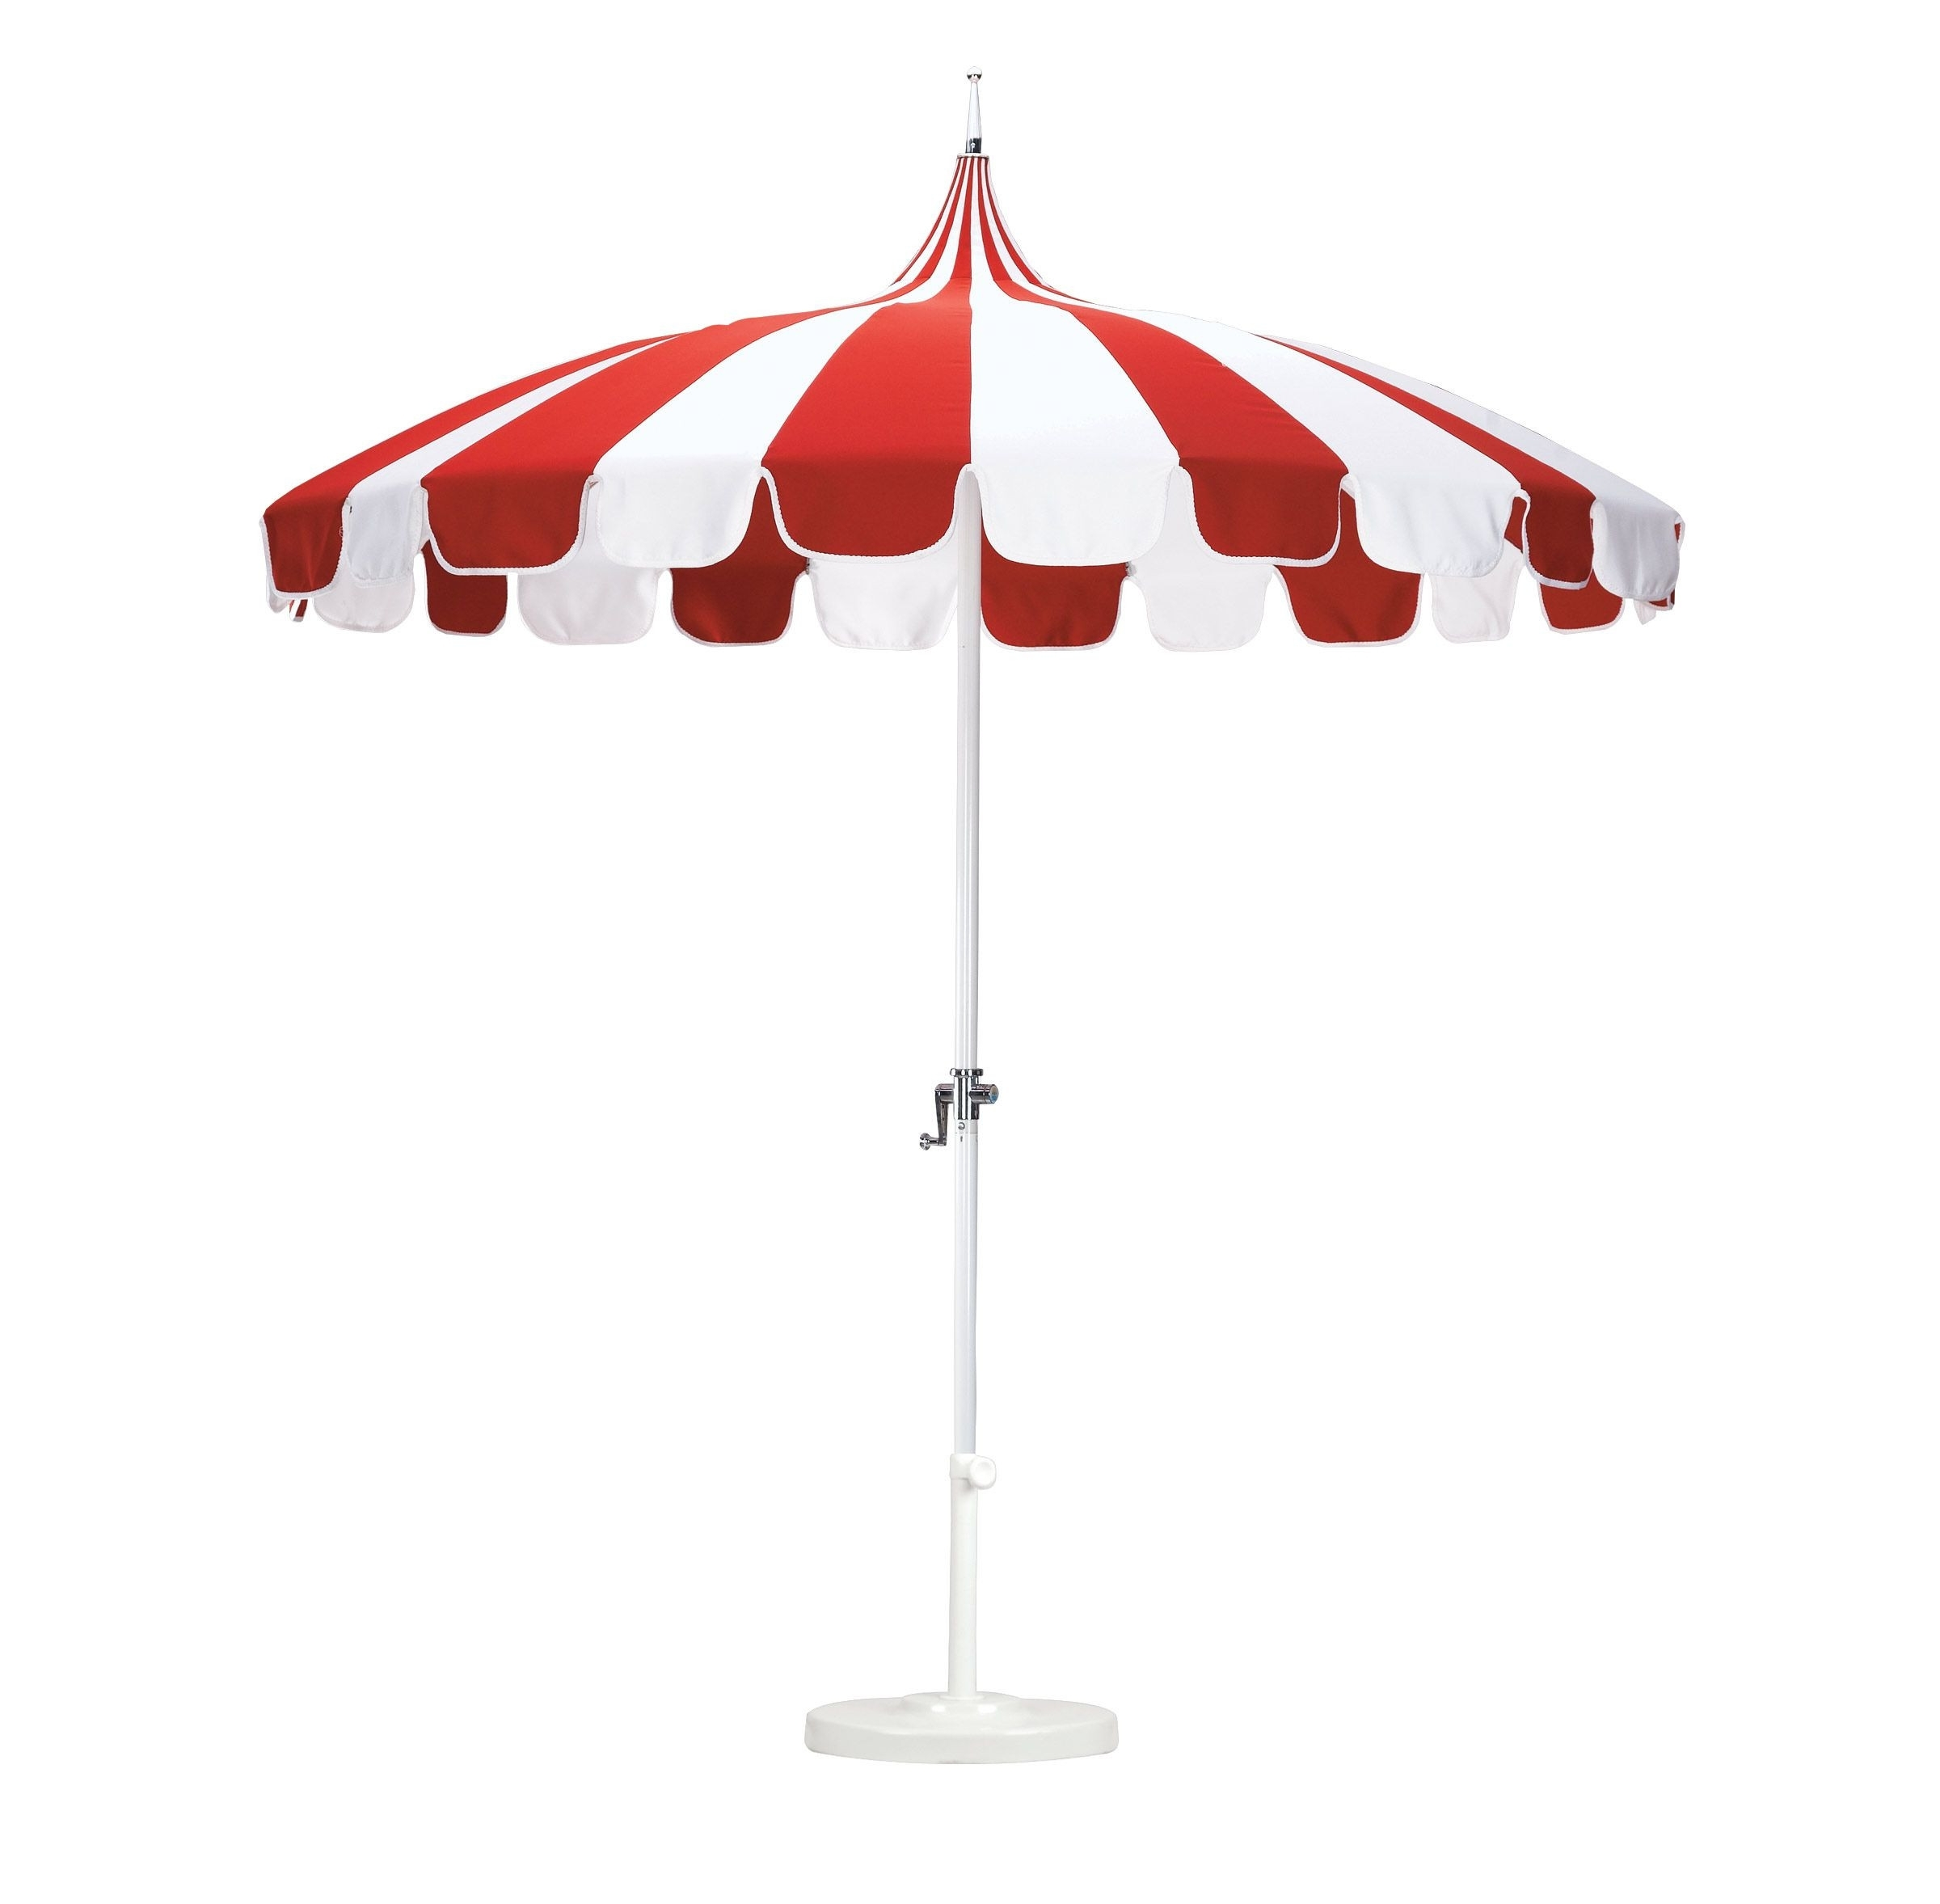 Patio Umbrellas For High Wind Areas Within Most Popular Outdoor Umbrella Weights Luxury Best For High Wind Areas This  (View 16 of 20)